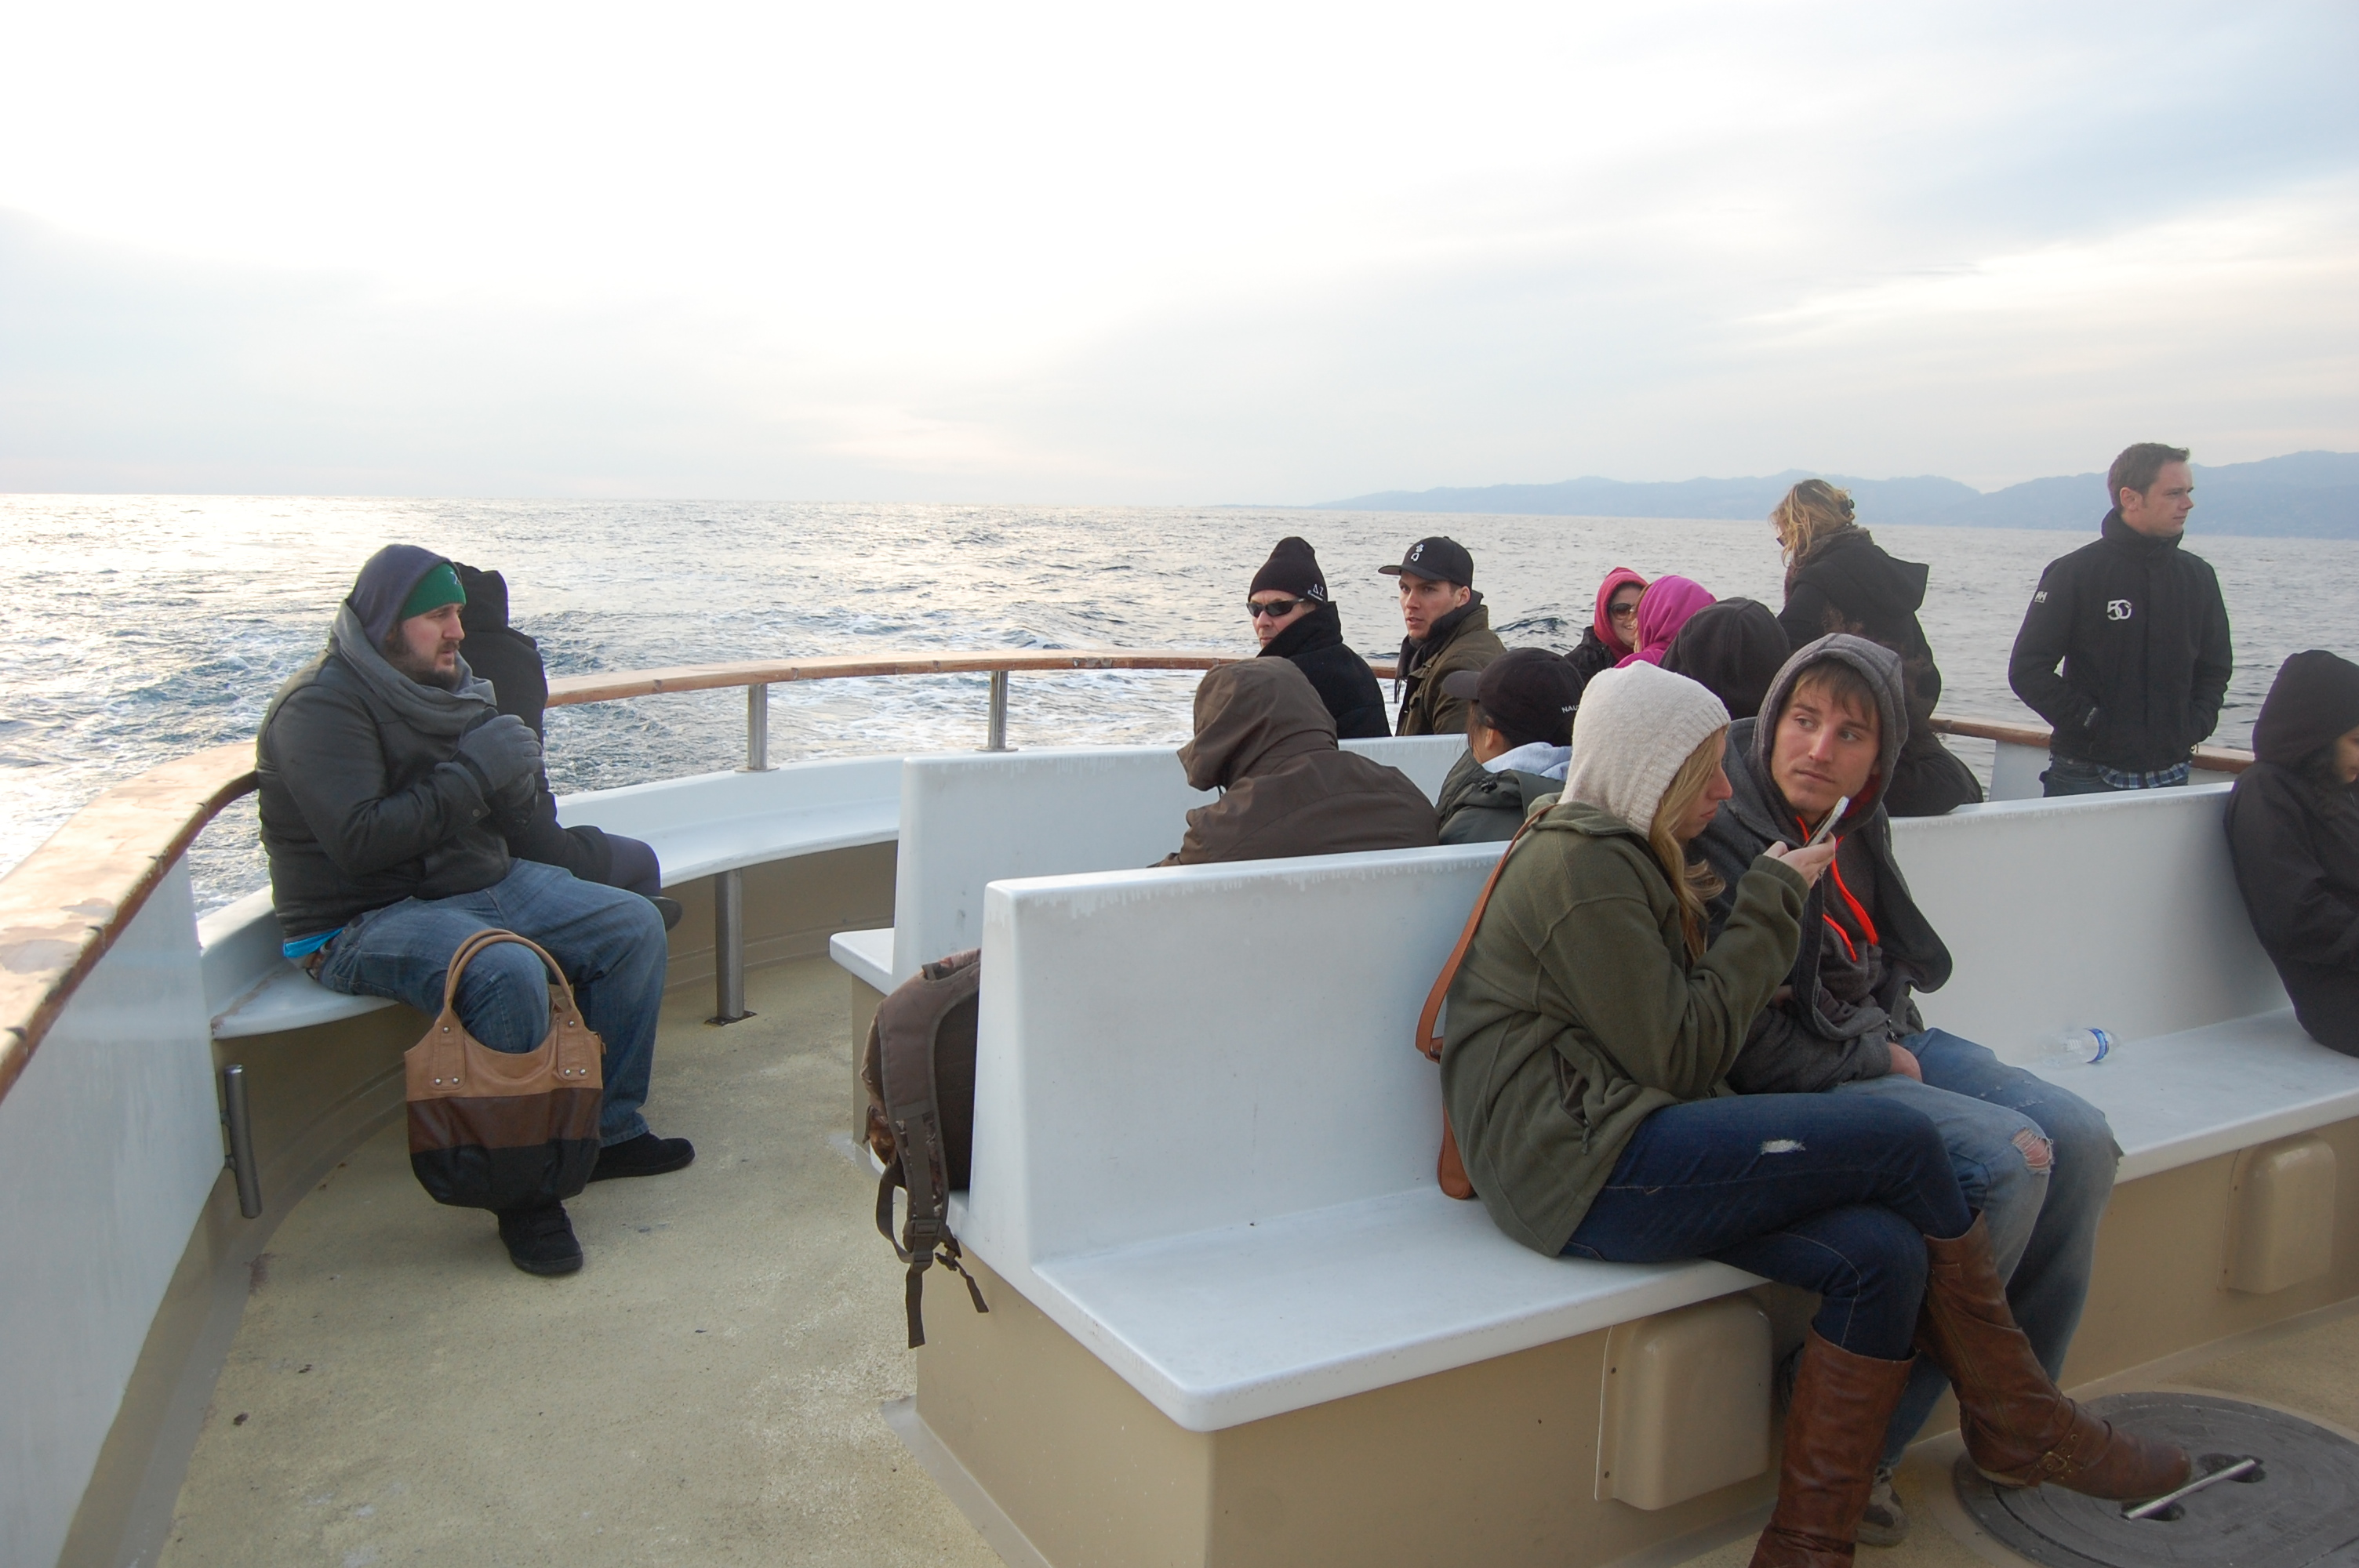 Like a forlorn sailor's wife abandoning her use of the widow's walk, these passengers gave up even looking at the sea.